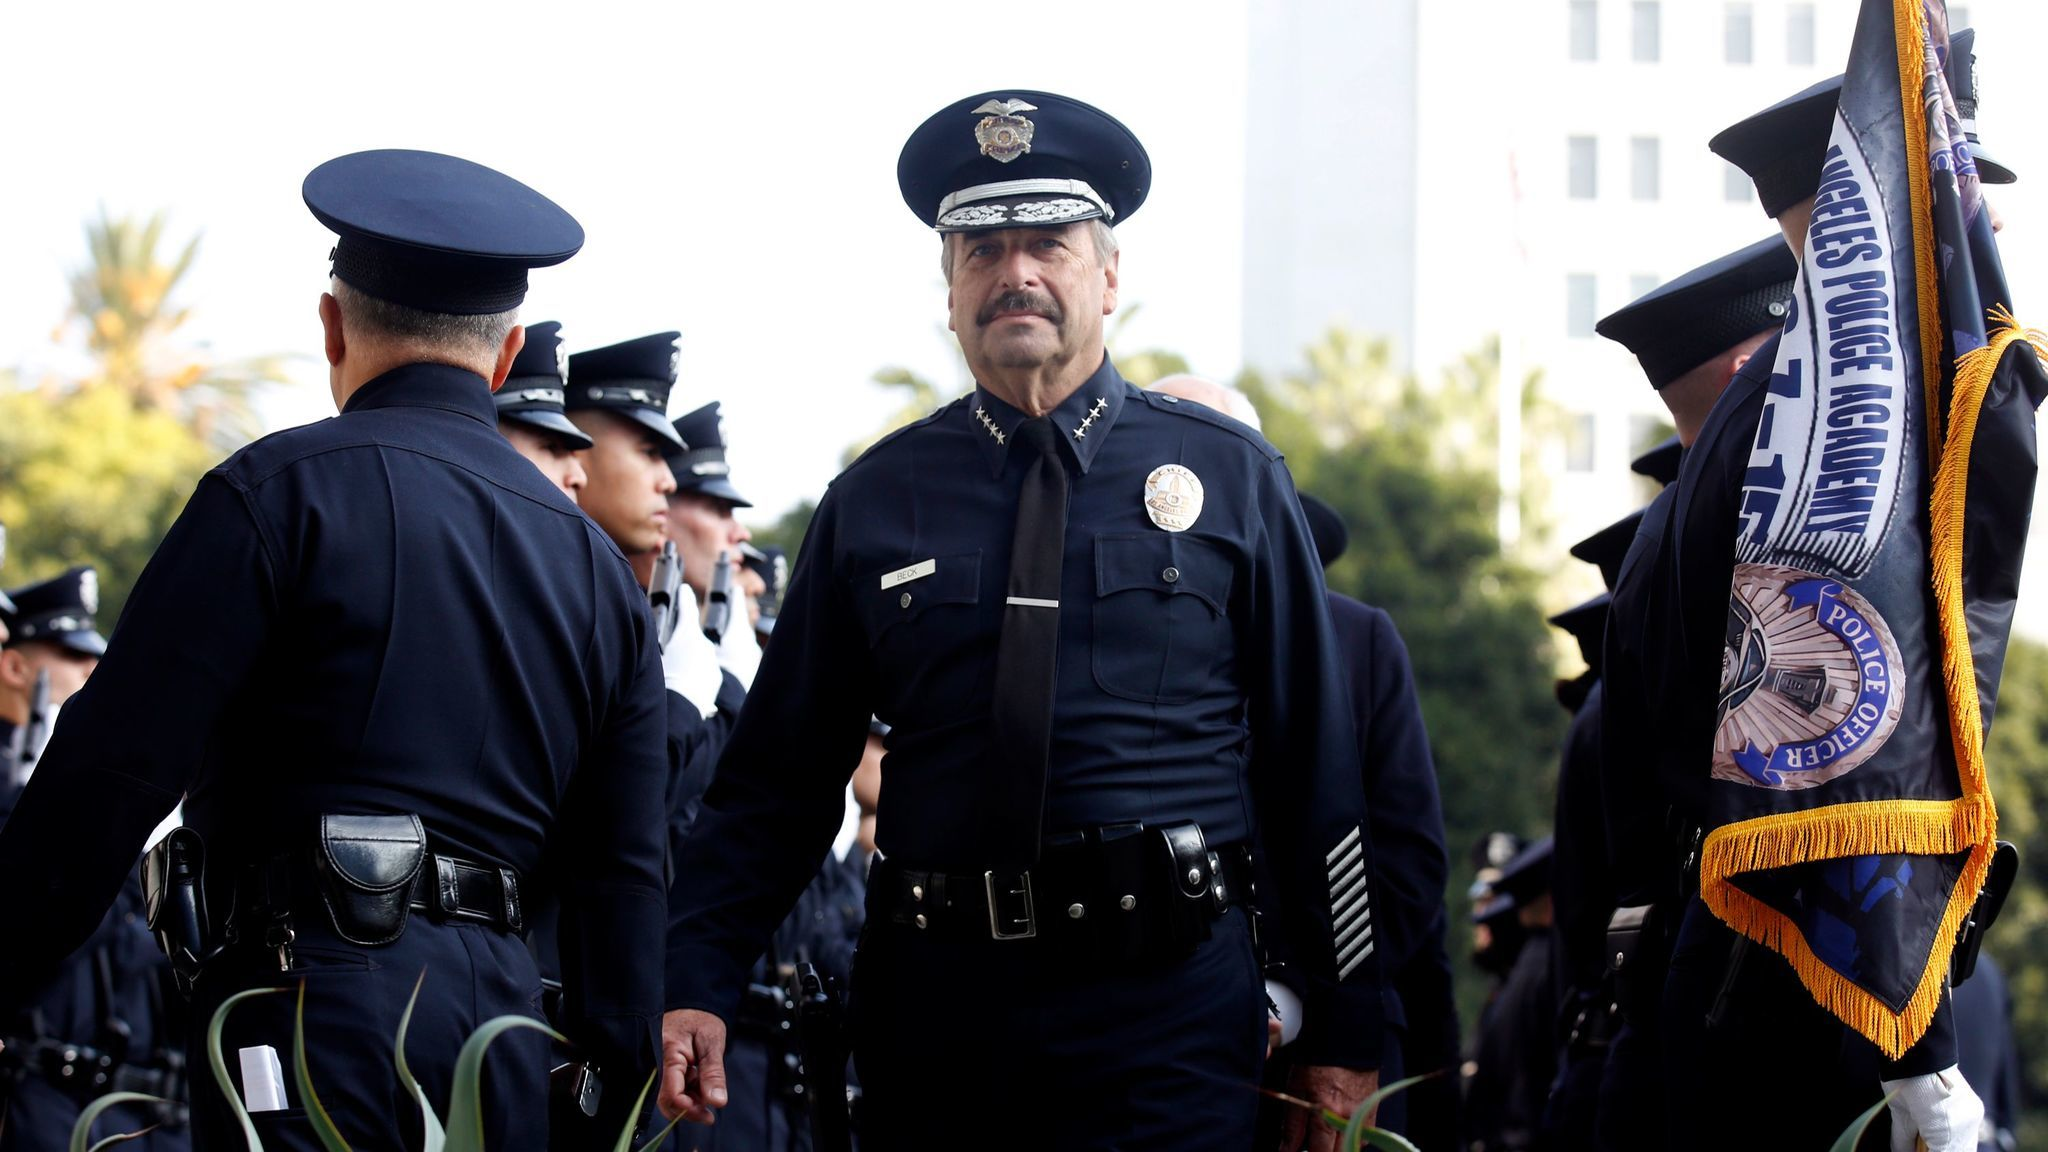 lapd chief charlie beck appears at a 2015 graduation ceremony for new lapd officers